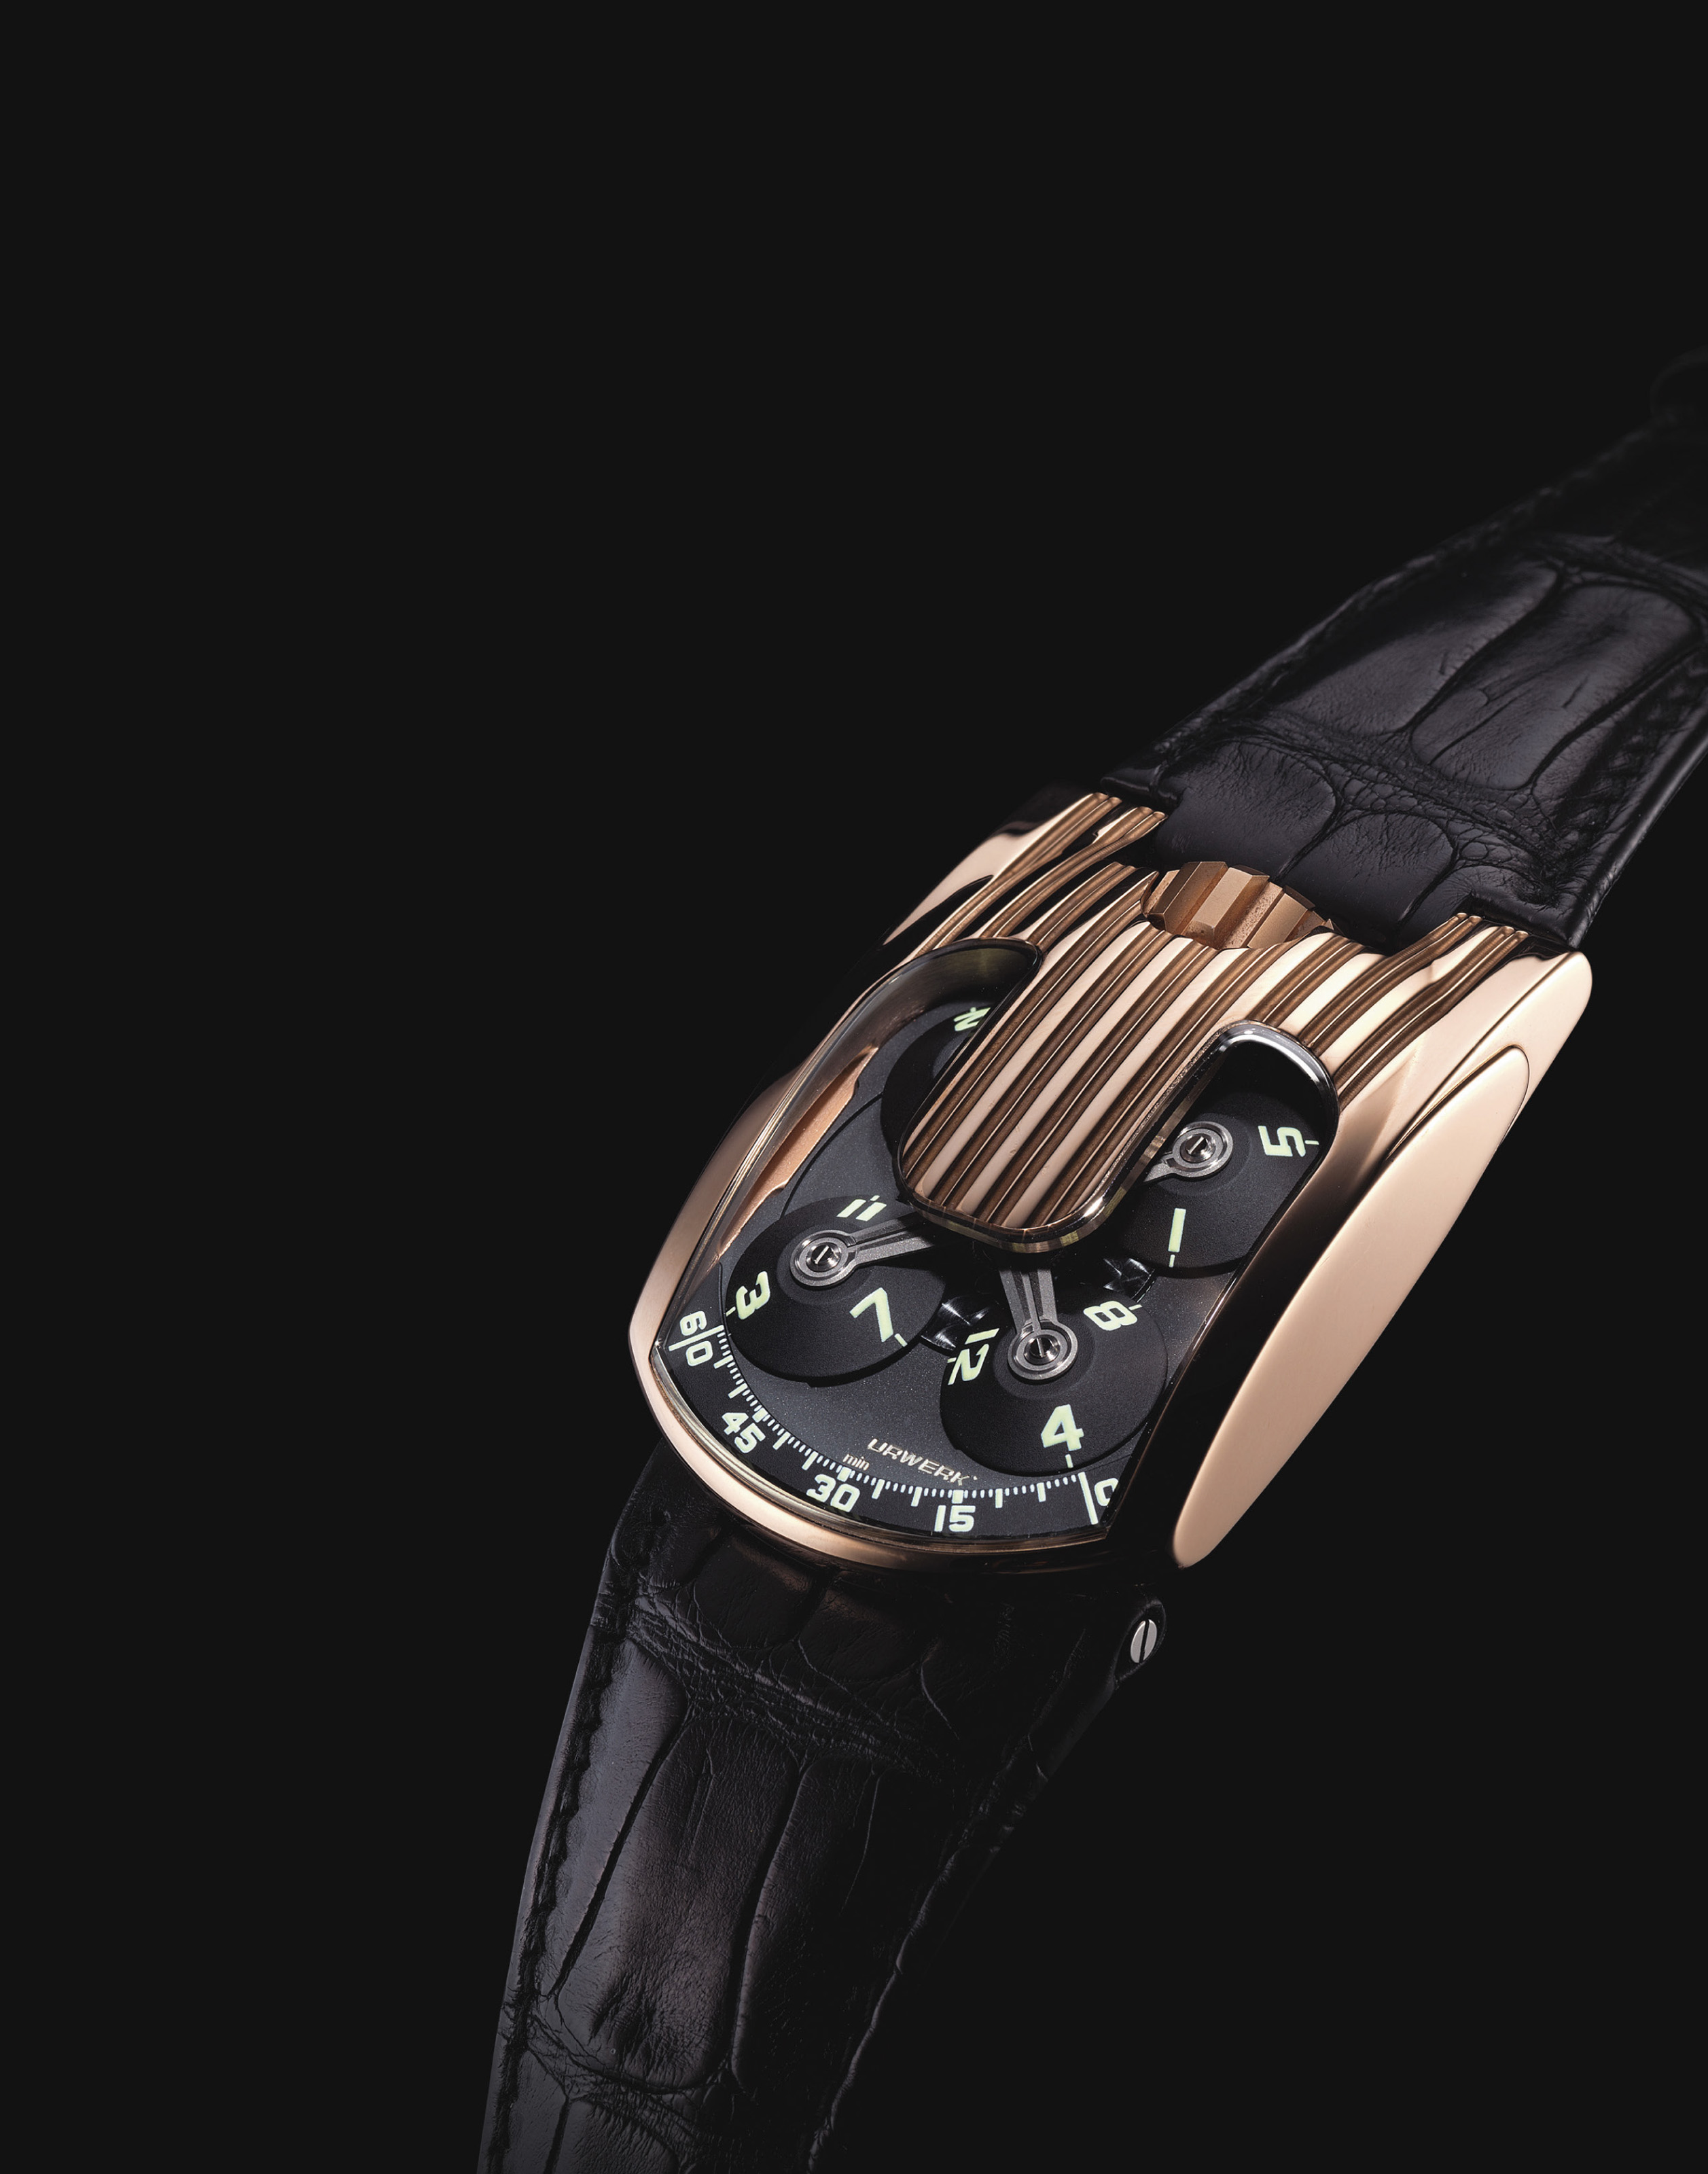 URWERK. A FINE AND RARE 18K PINK GOLD CHRONOMETER WRISTWATCH WITH 3-DIMENSIONAL SATELLITE HOUR DISPLAY AND POWER RESERVE